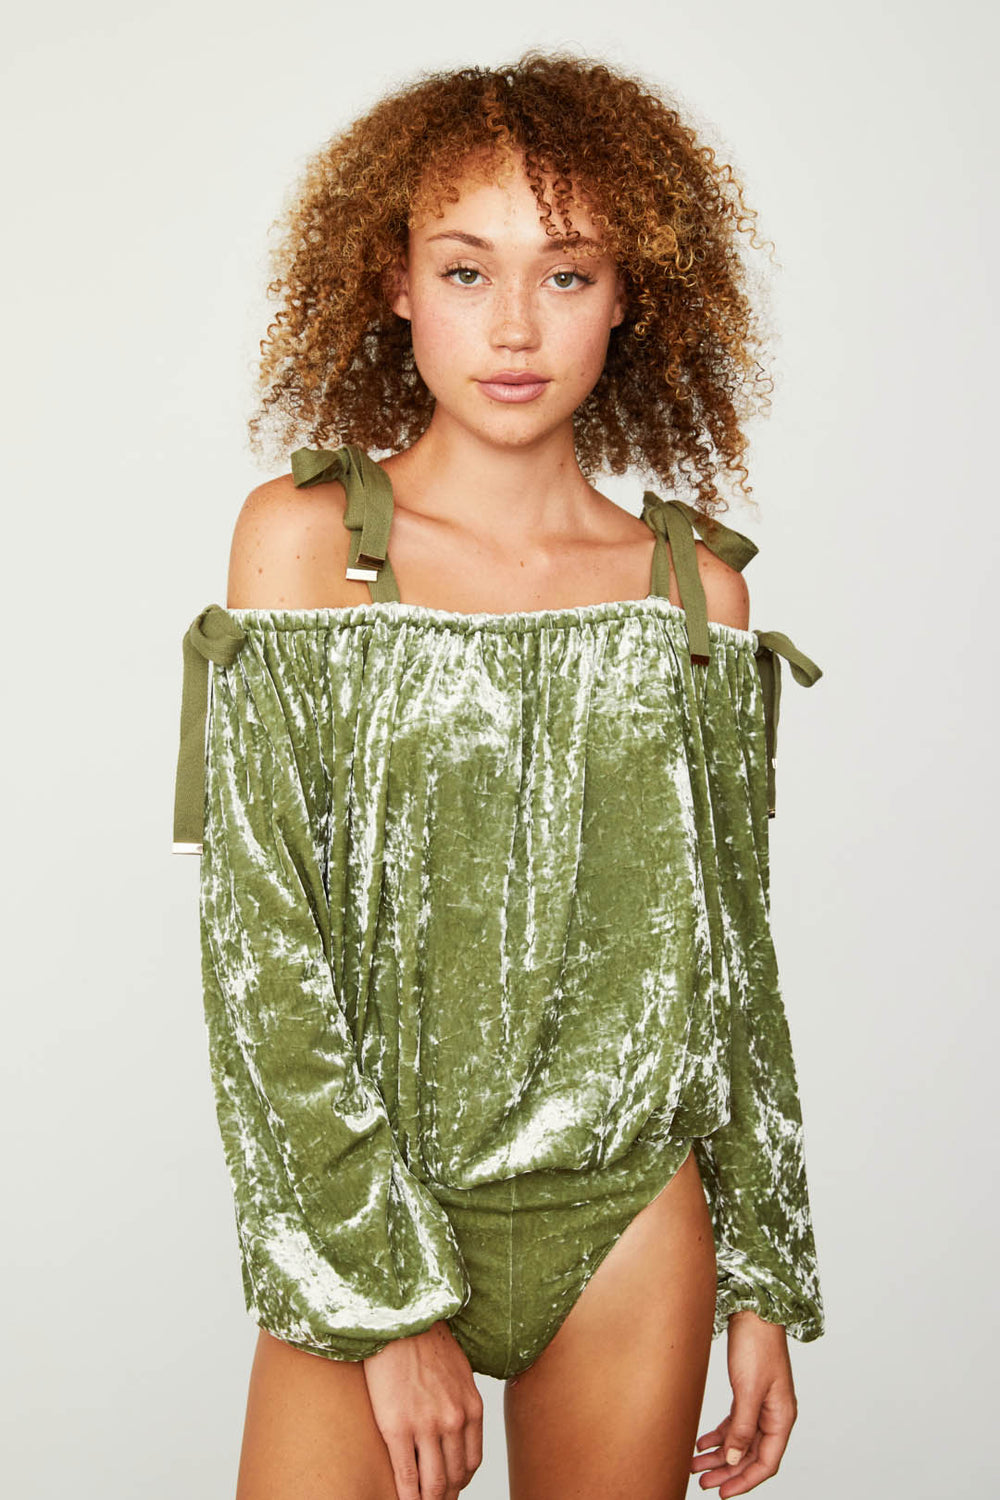 light green off the shoulder adjustable velvet top bodysuit vintage inspired